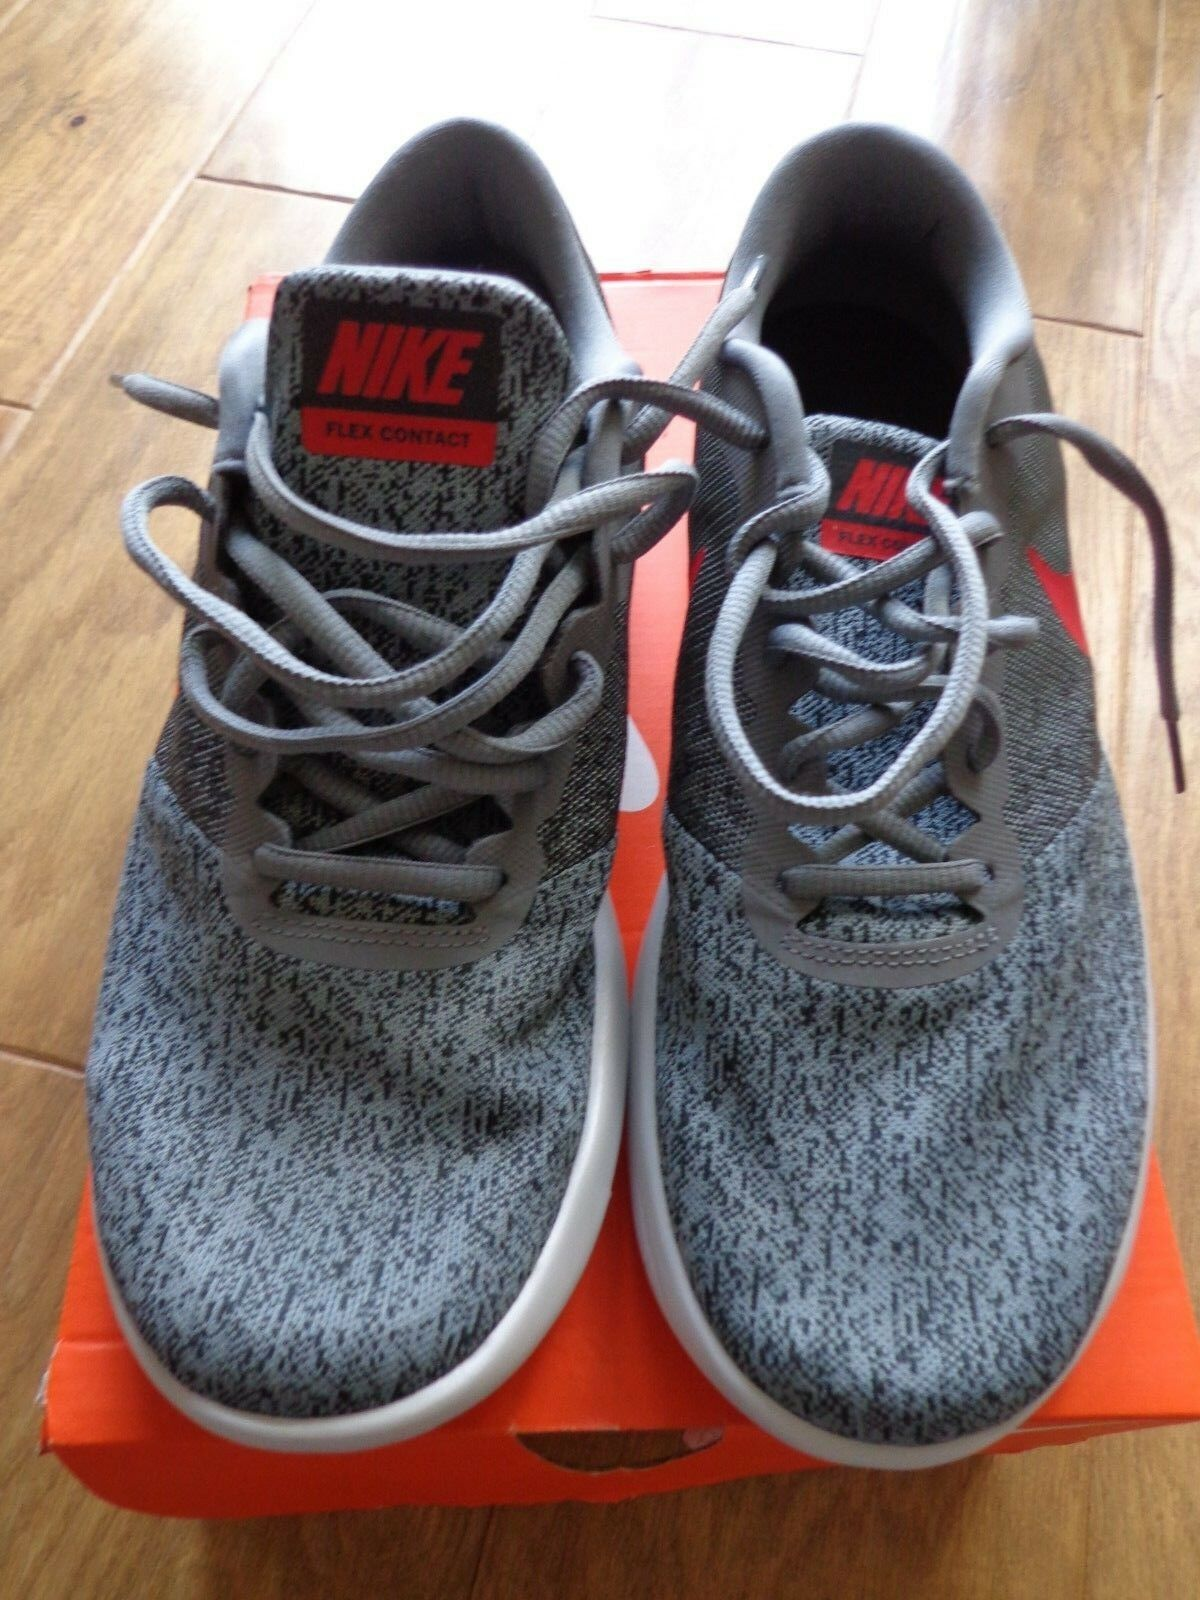 NIKE MENS FLEX CONTACT GREY RED RUNNING SHOES sz 9.5  NEW  free and fast delivery available